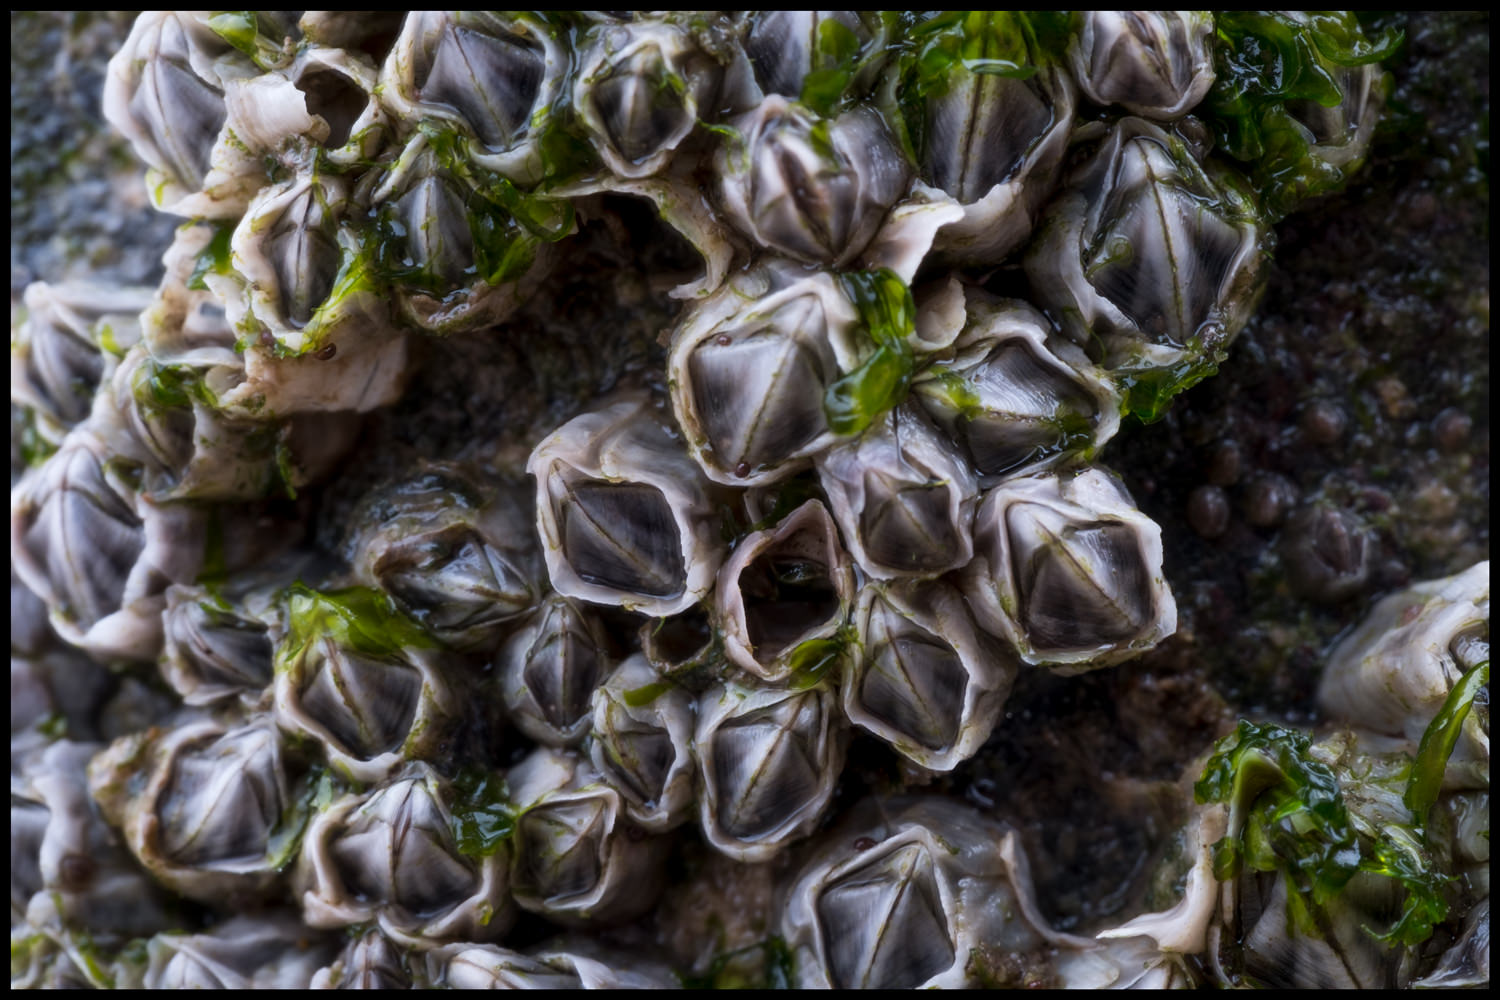 A macro shot of some of the barnacles, showing them in great detail